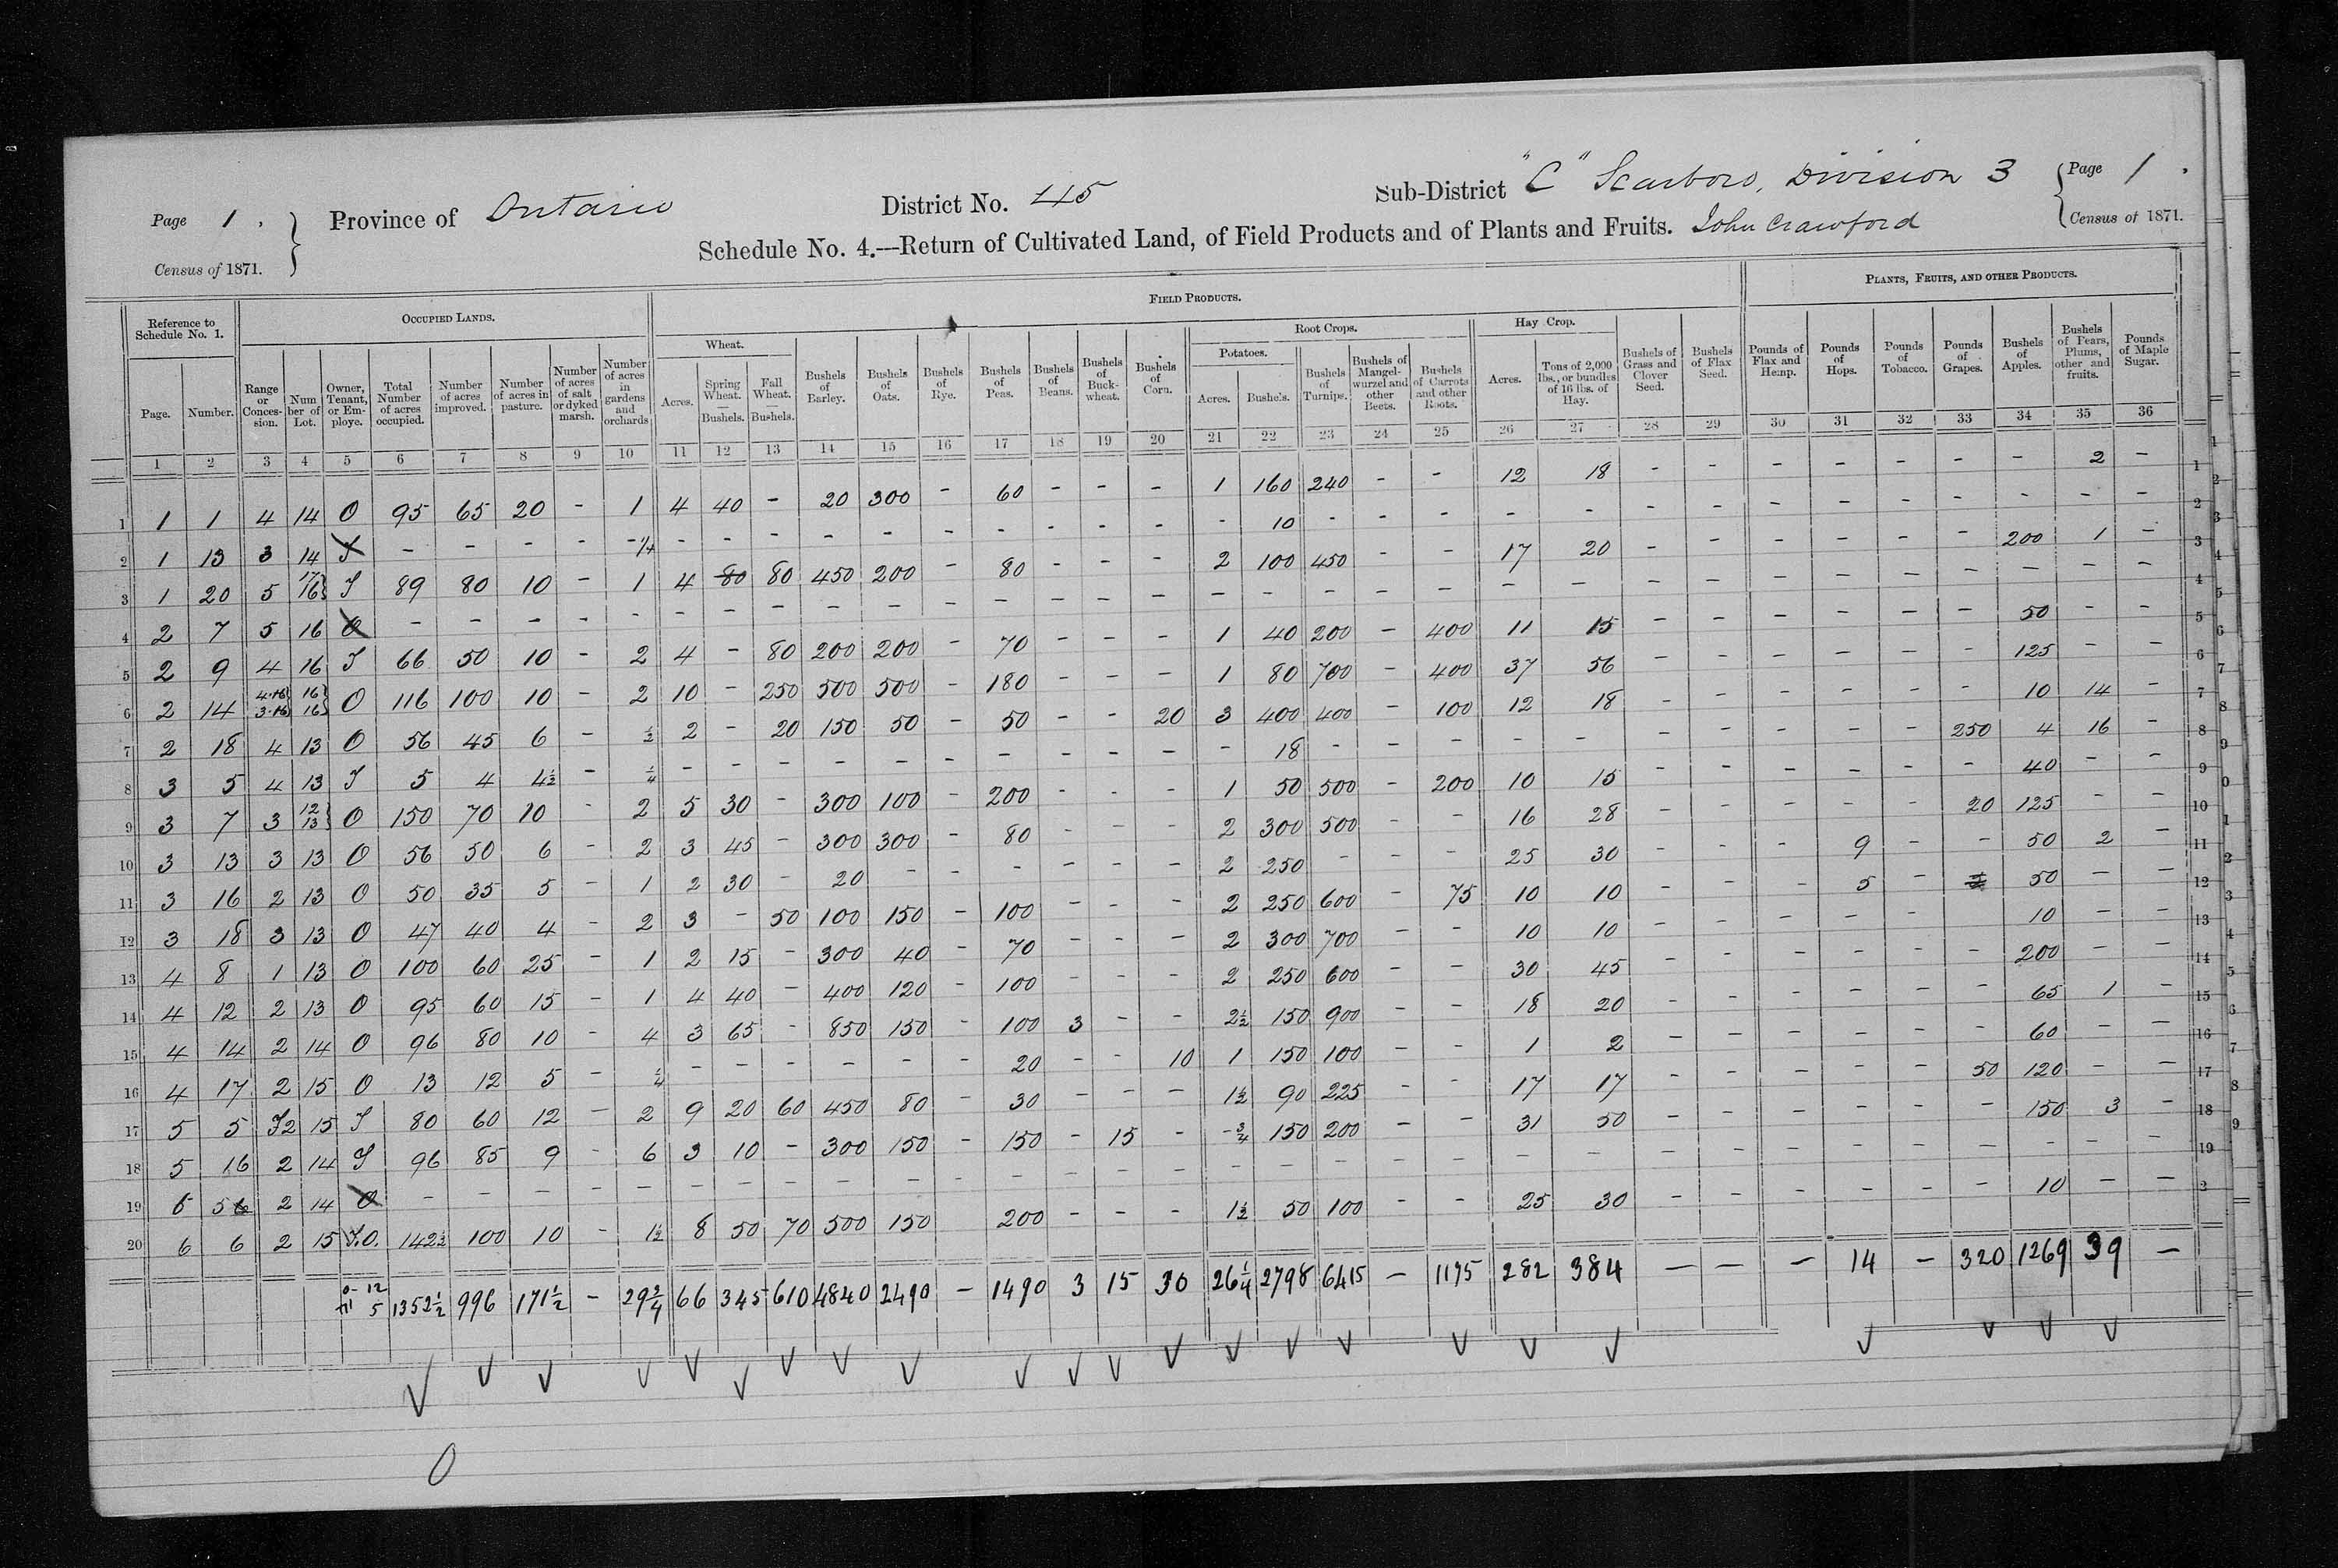 Title: Census of Canada, 1871 - Mikan Number: 142105 - Microform: c-9968